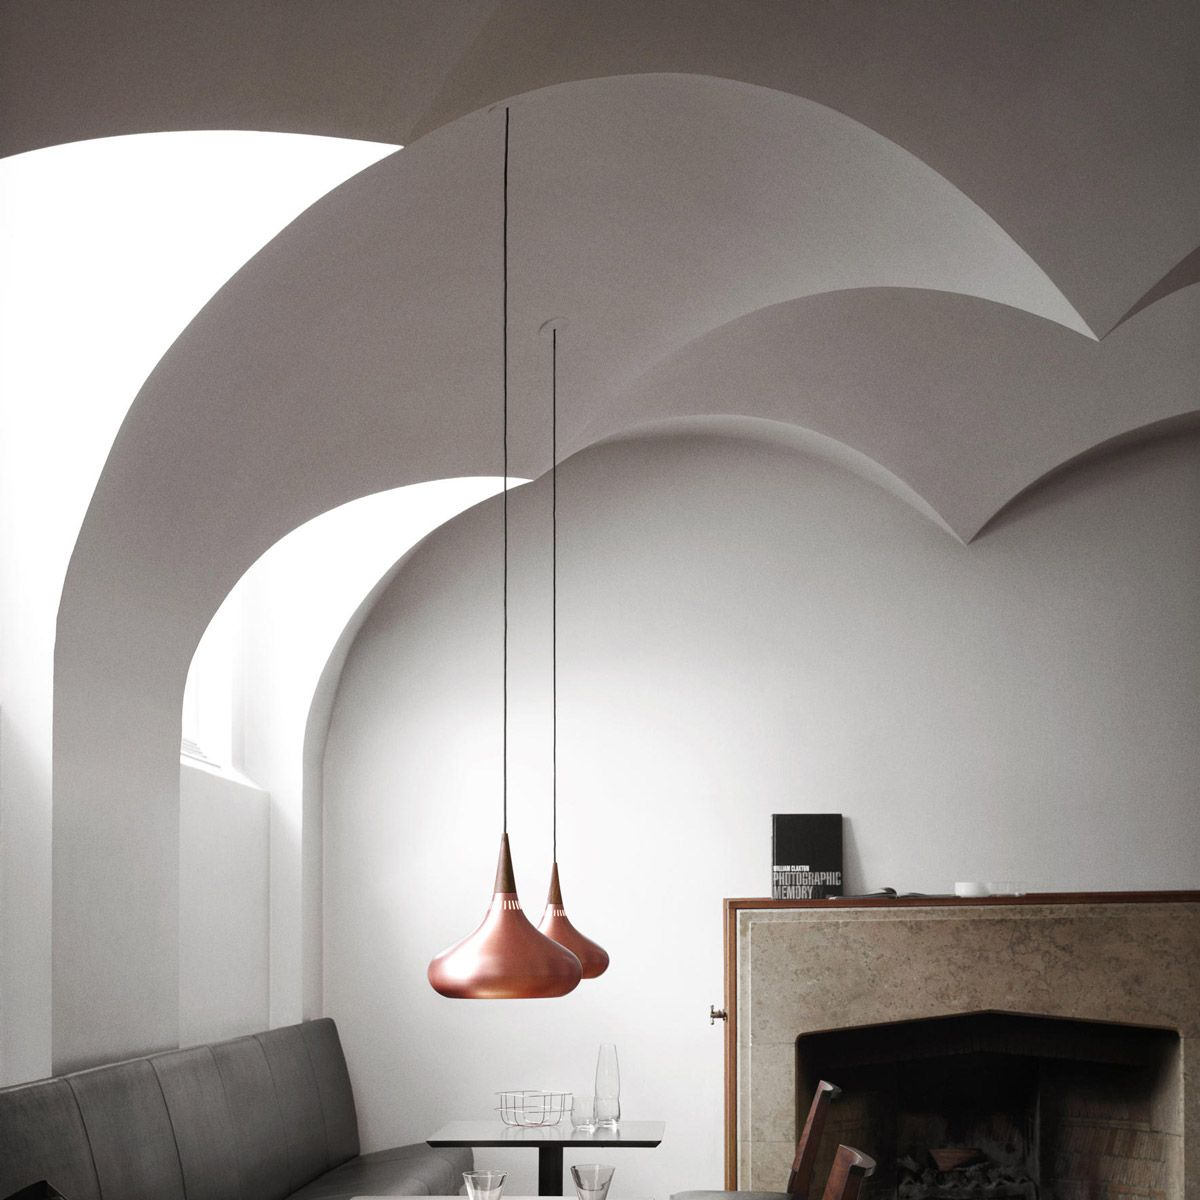 Orient copper lamp by Jo Hammerborg edited by Light Years